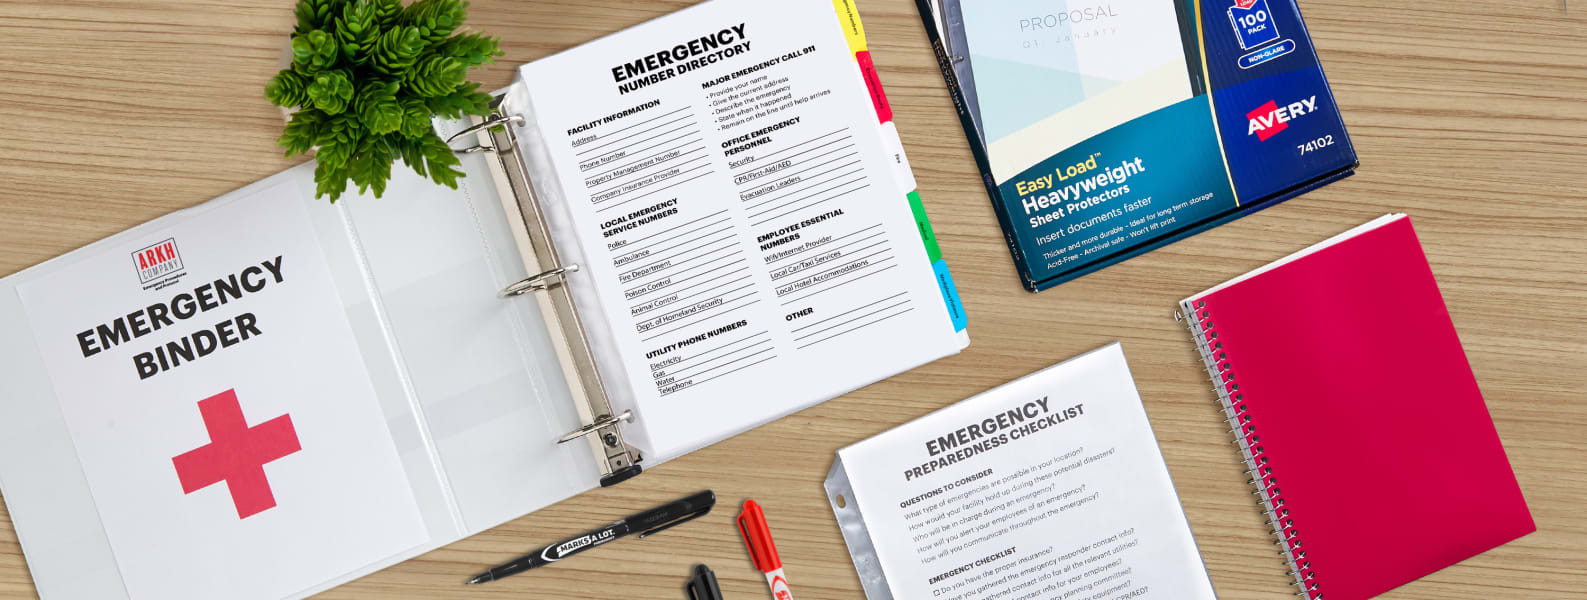 supplies and what to put in an emergency binder laid out on a wooden table for emergency preparedness planning